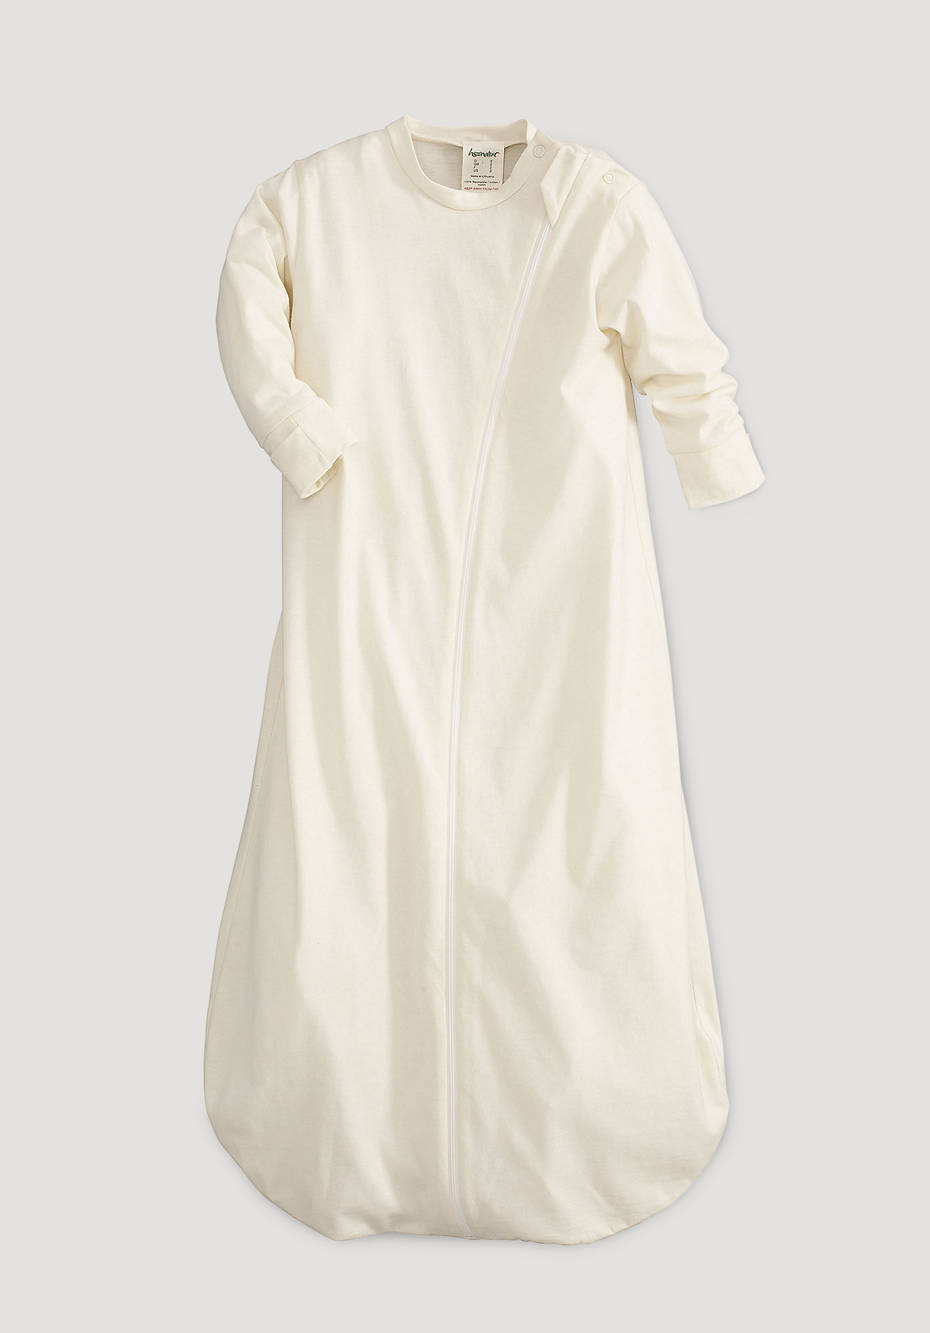 Sleeping bag made from pure organic cotton